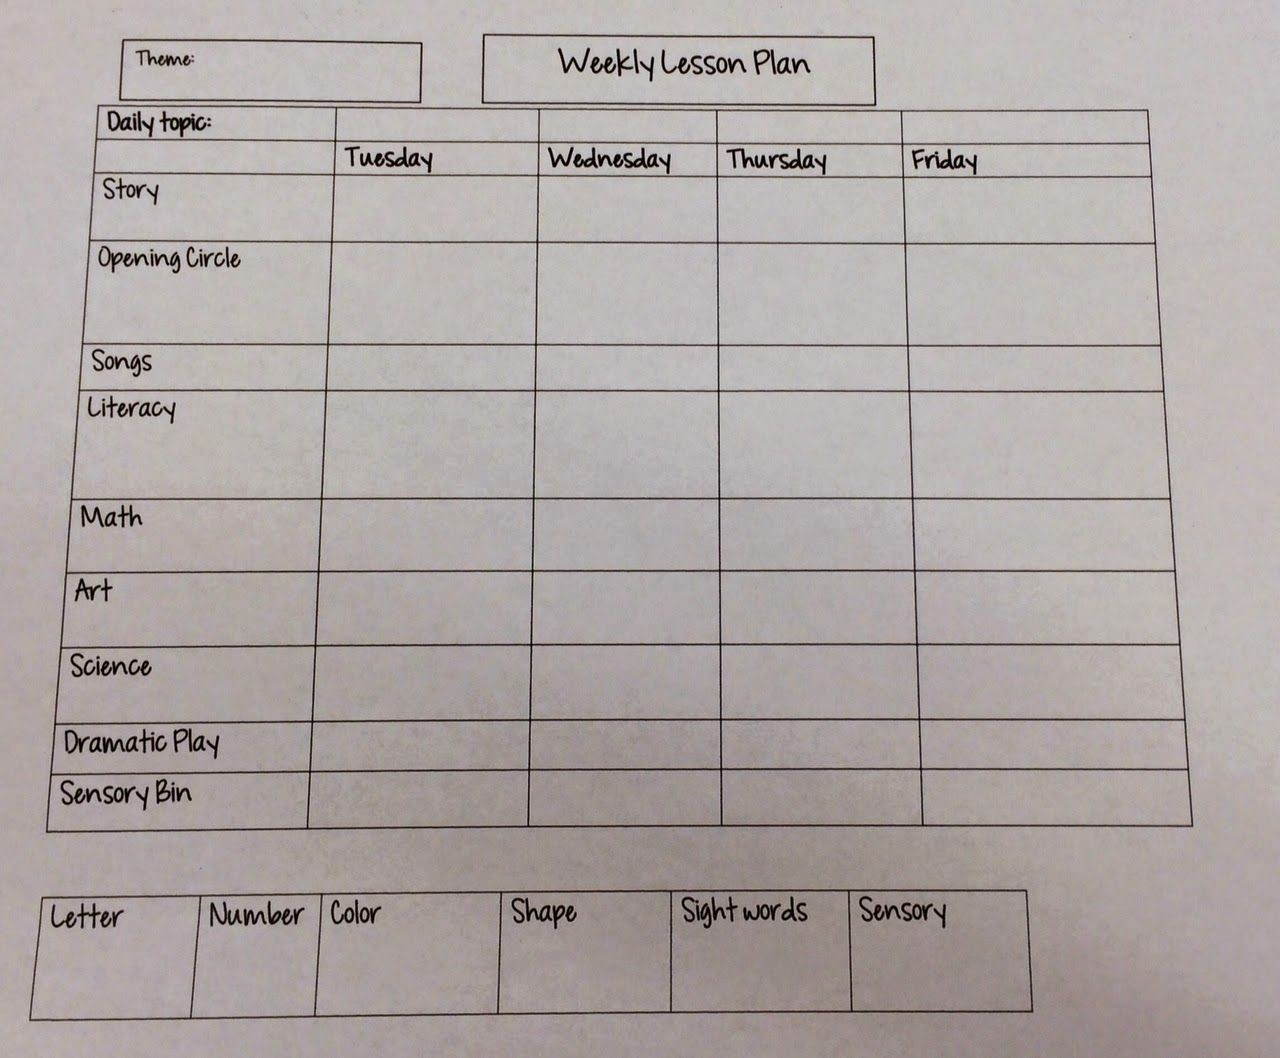 Weekly Lesson Plan Templates Free Fresh Miss Nicole S Preschool Weekly Lesson Plan Template